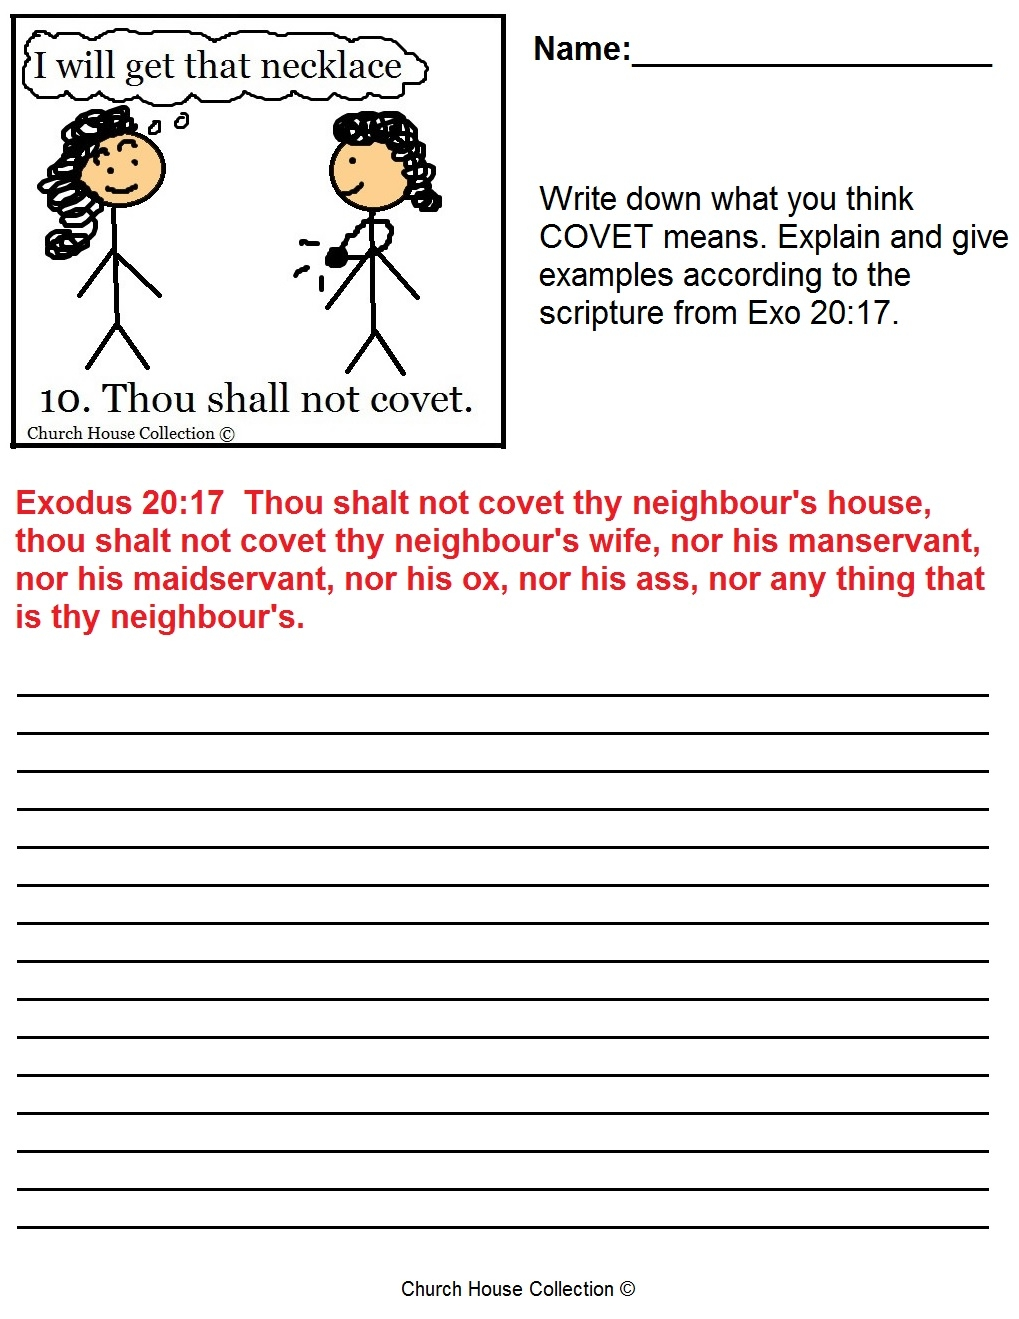 ten commandments coloring pages - thou shalt not covet sunday school lesson